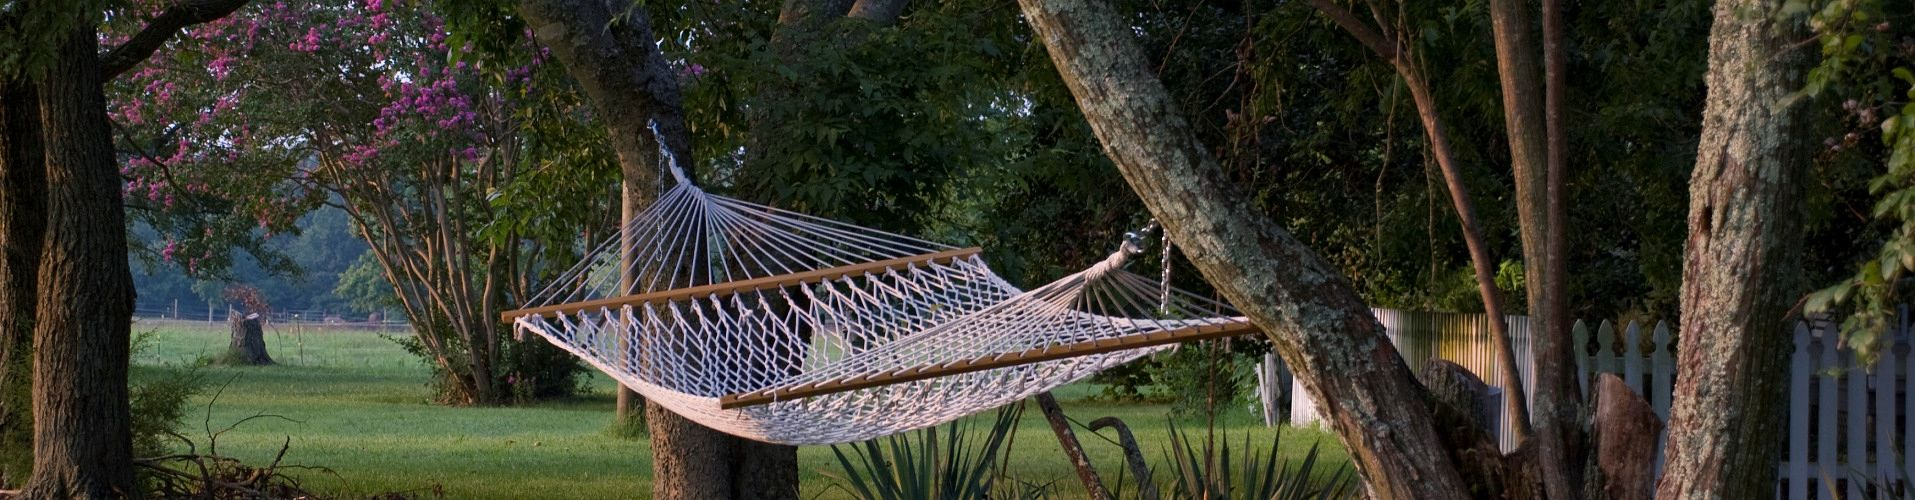 Hammock for relaxing at the ranch